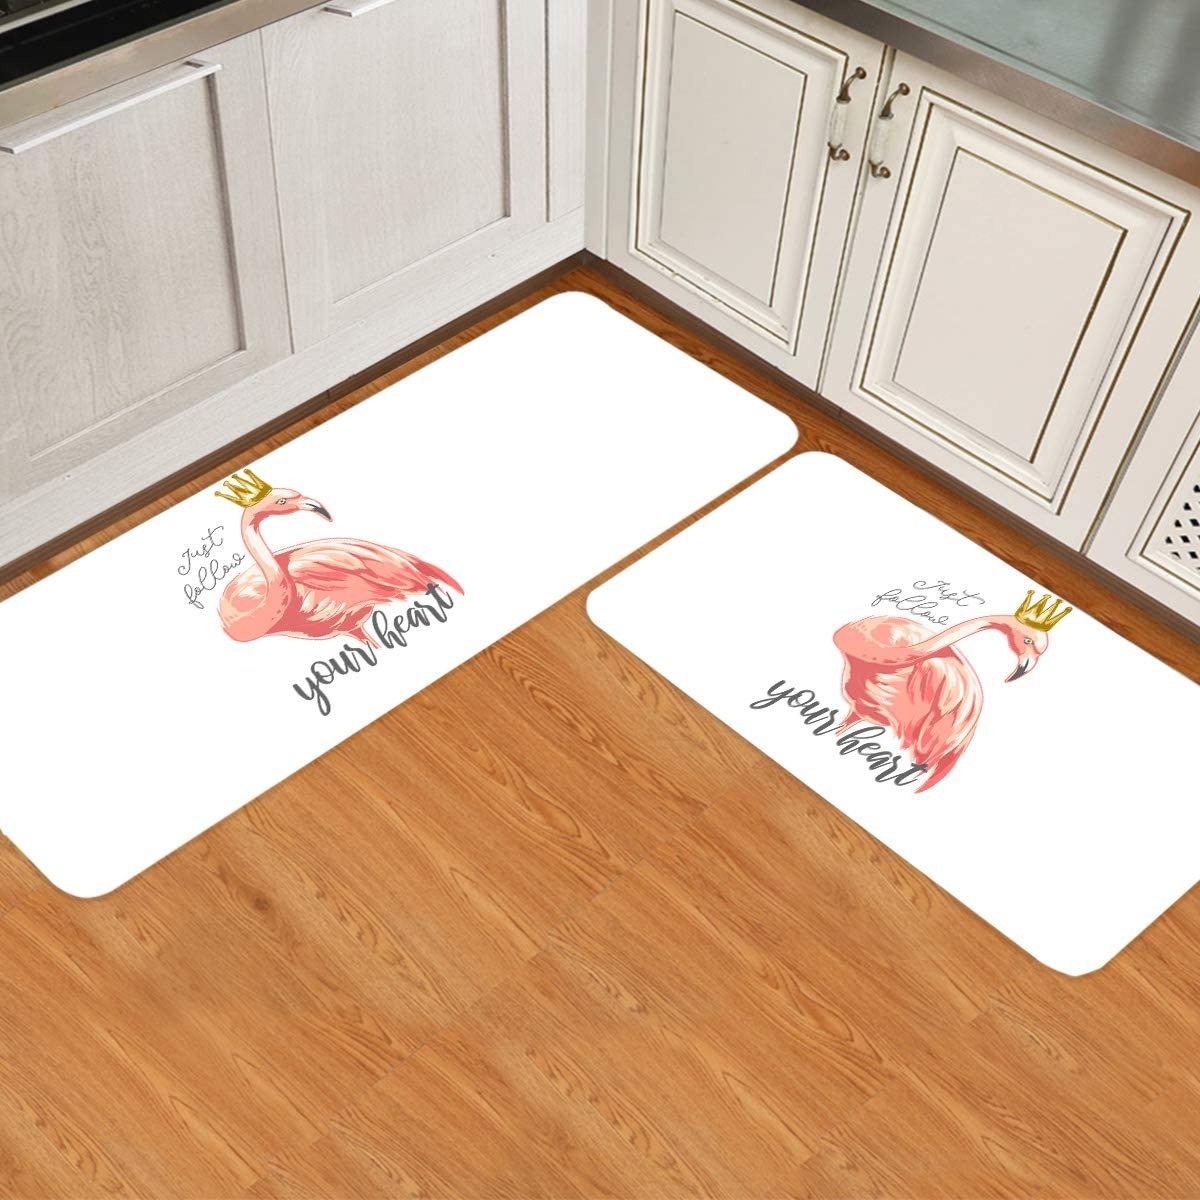 ARTSHOWING Flamingo 2 Pieces Free shipping on posting reviews Set Kitchen Mats free shipping for Sli Non Floor